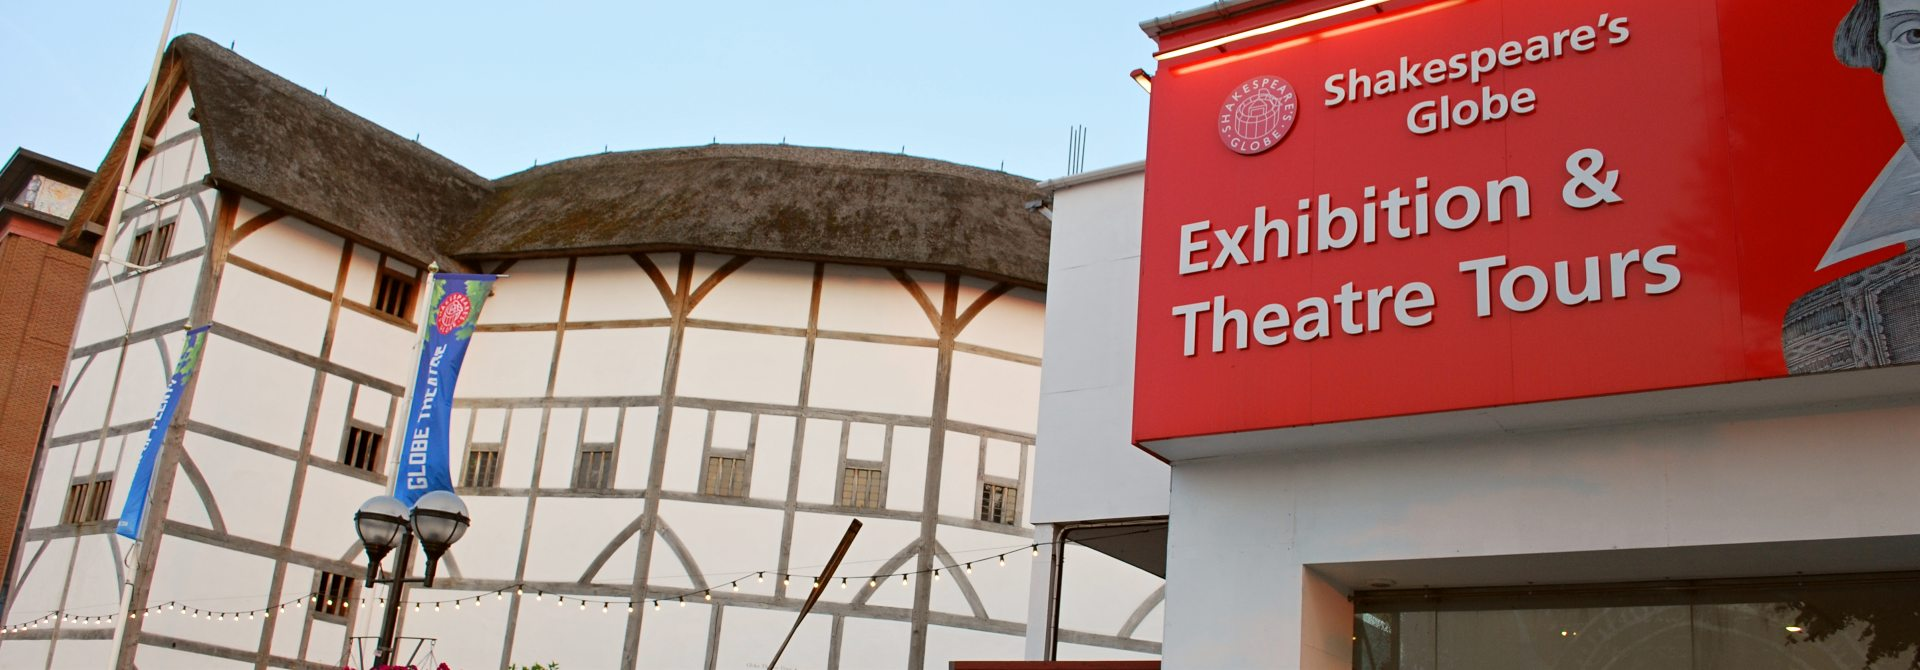 Shakespeare's Globe Header